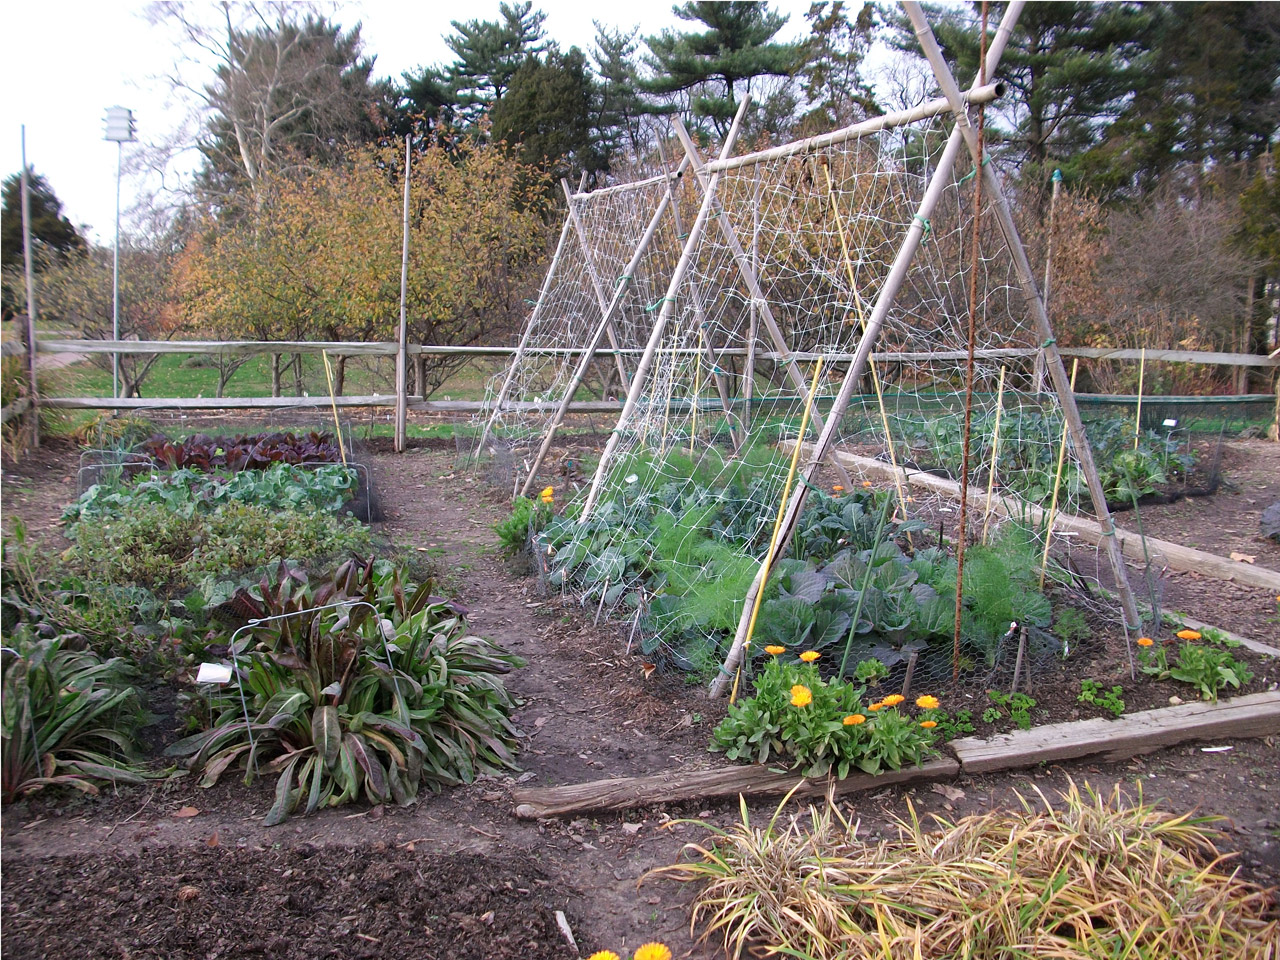 Apply Now For A Free Community Garden! Sunshine Girl Charities Is Excited  To Account That It Will Be Offering Free Gardens To A Select Number Of ...